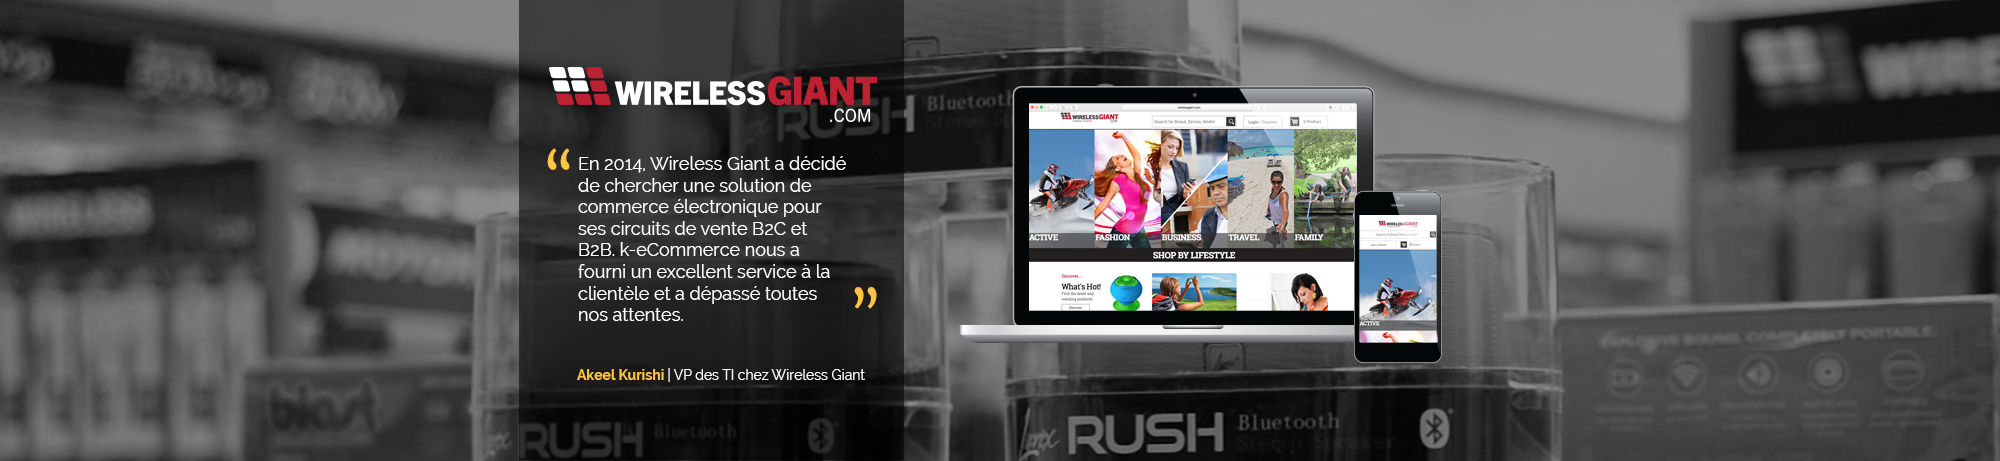 wireless_giant_case_study_banner_fr